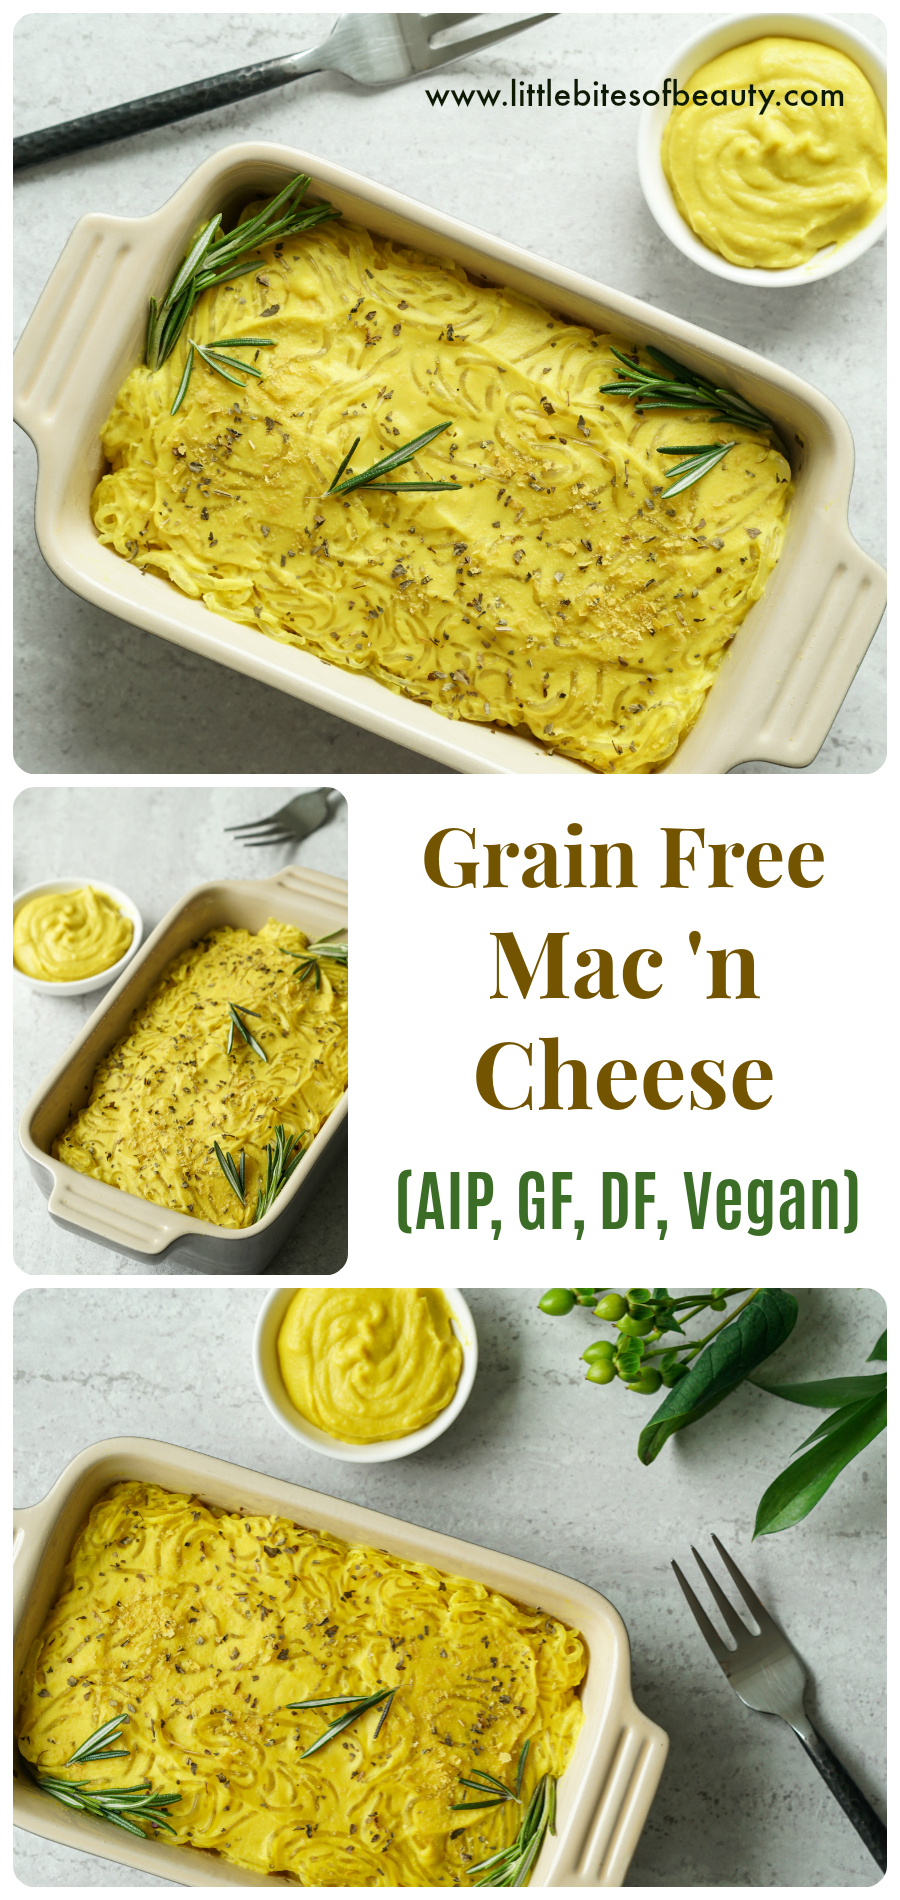 Grain Free Mac and Cheese (AIP, GF, DF, Vegan)